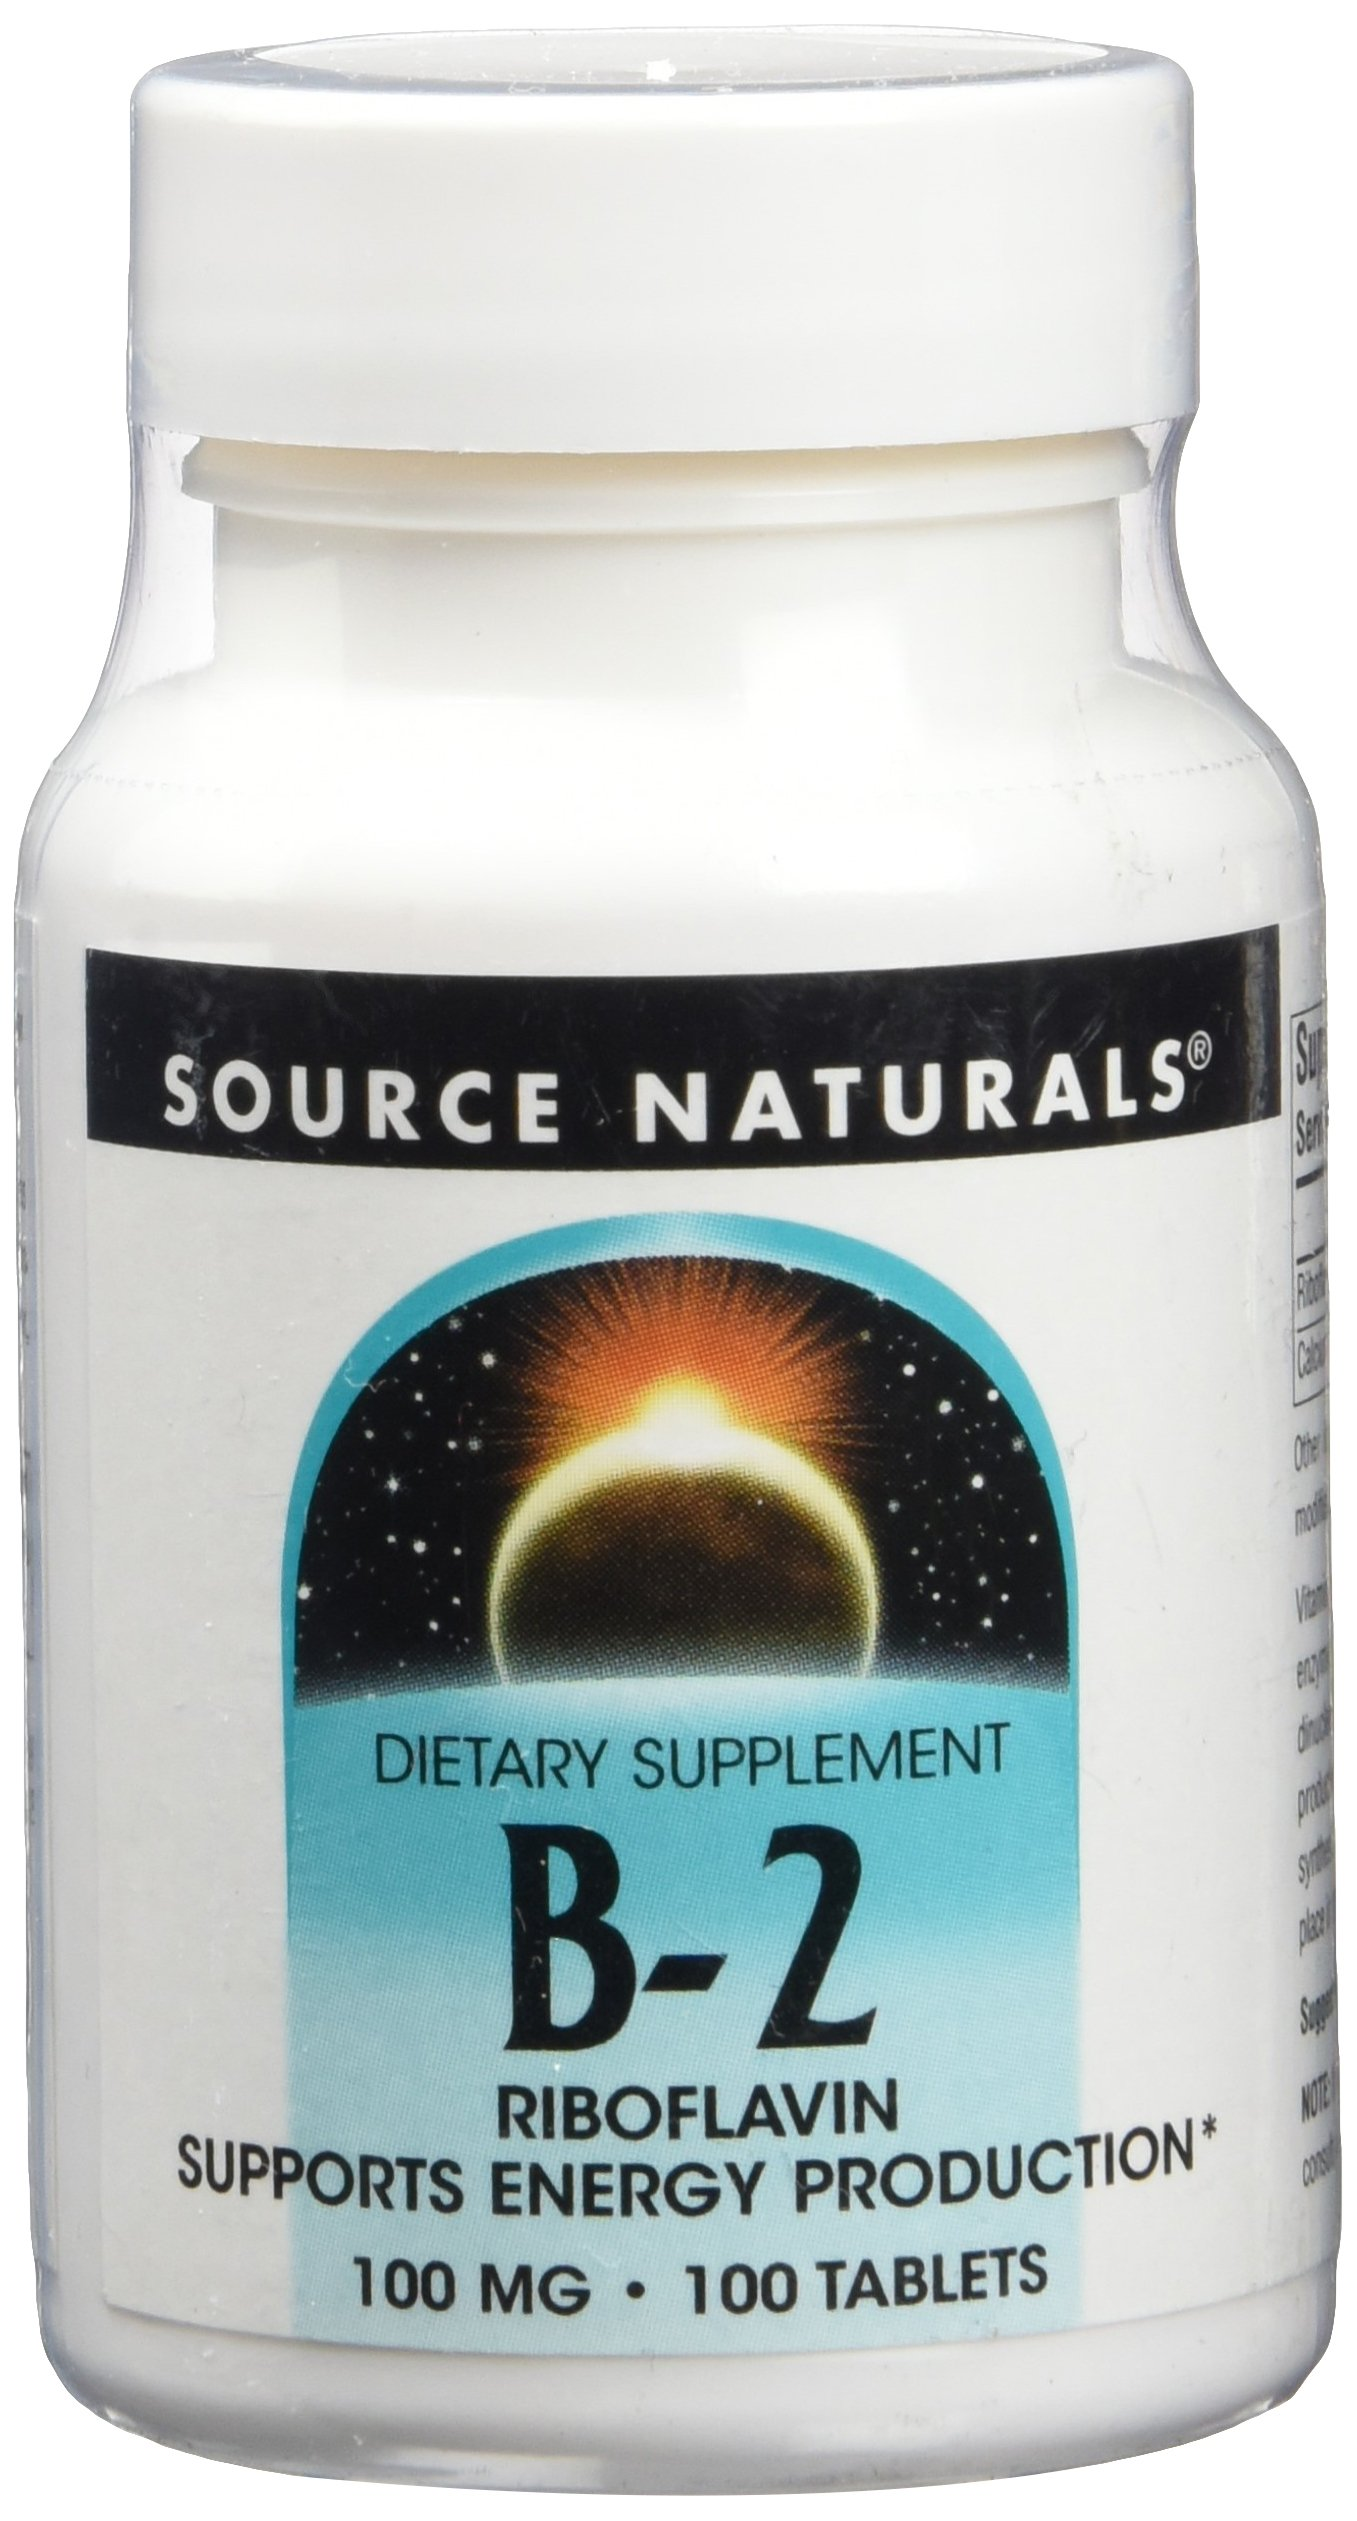 Source Naturals Vitamin B-2 Riboflavin 100mg, Supports Energy Production, 100 Tablets (Pack of 2)